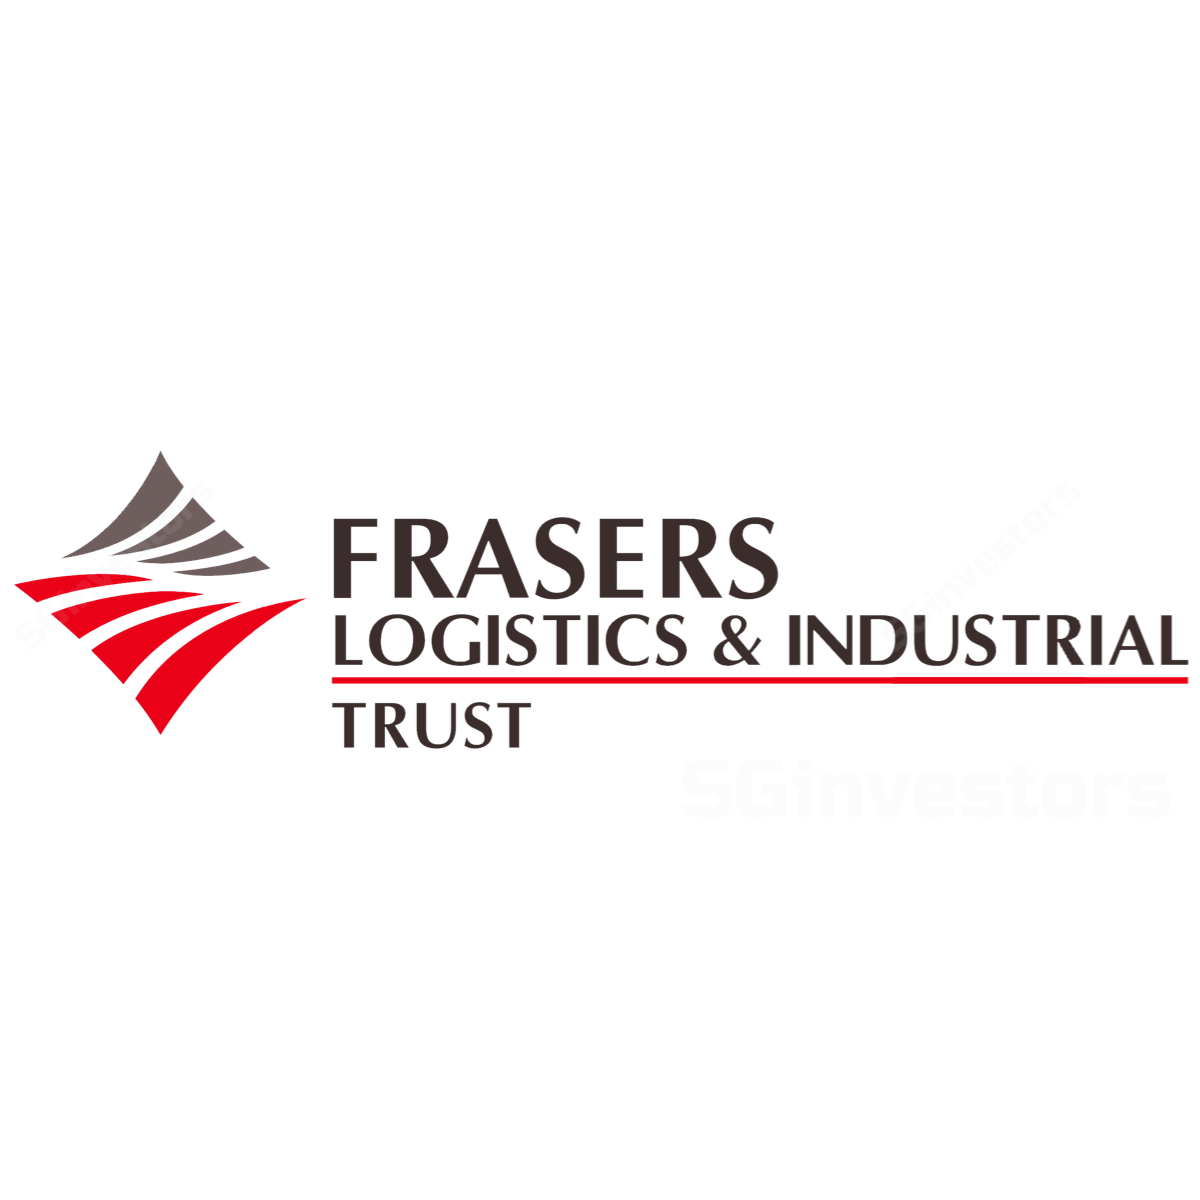 Frasers Logistics & Industrials Trust (FLT) - UOB Kay Hian 2017-07-31: 3Q17 FLT Results Above Expectations